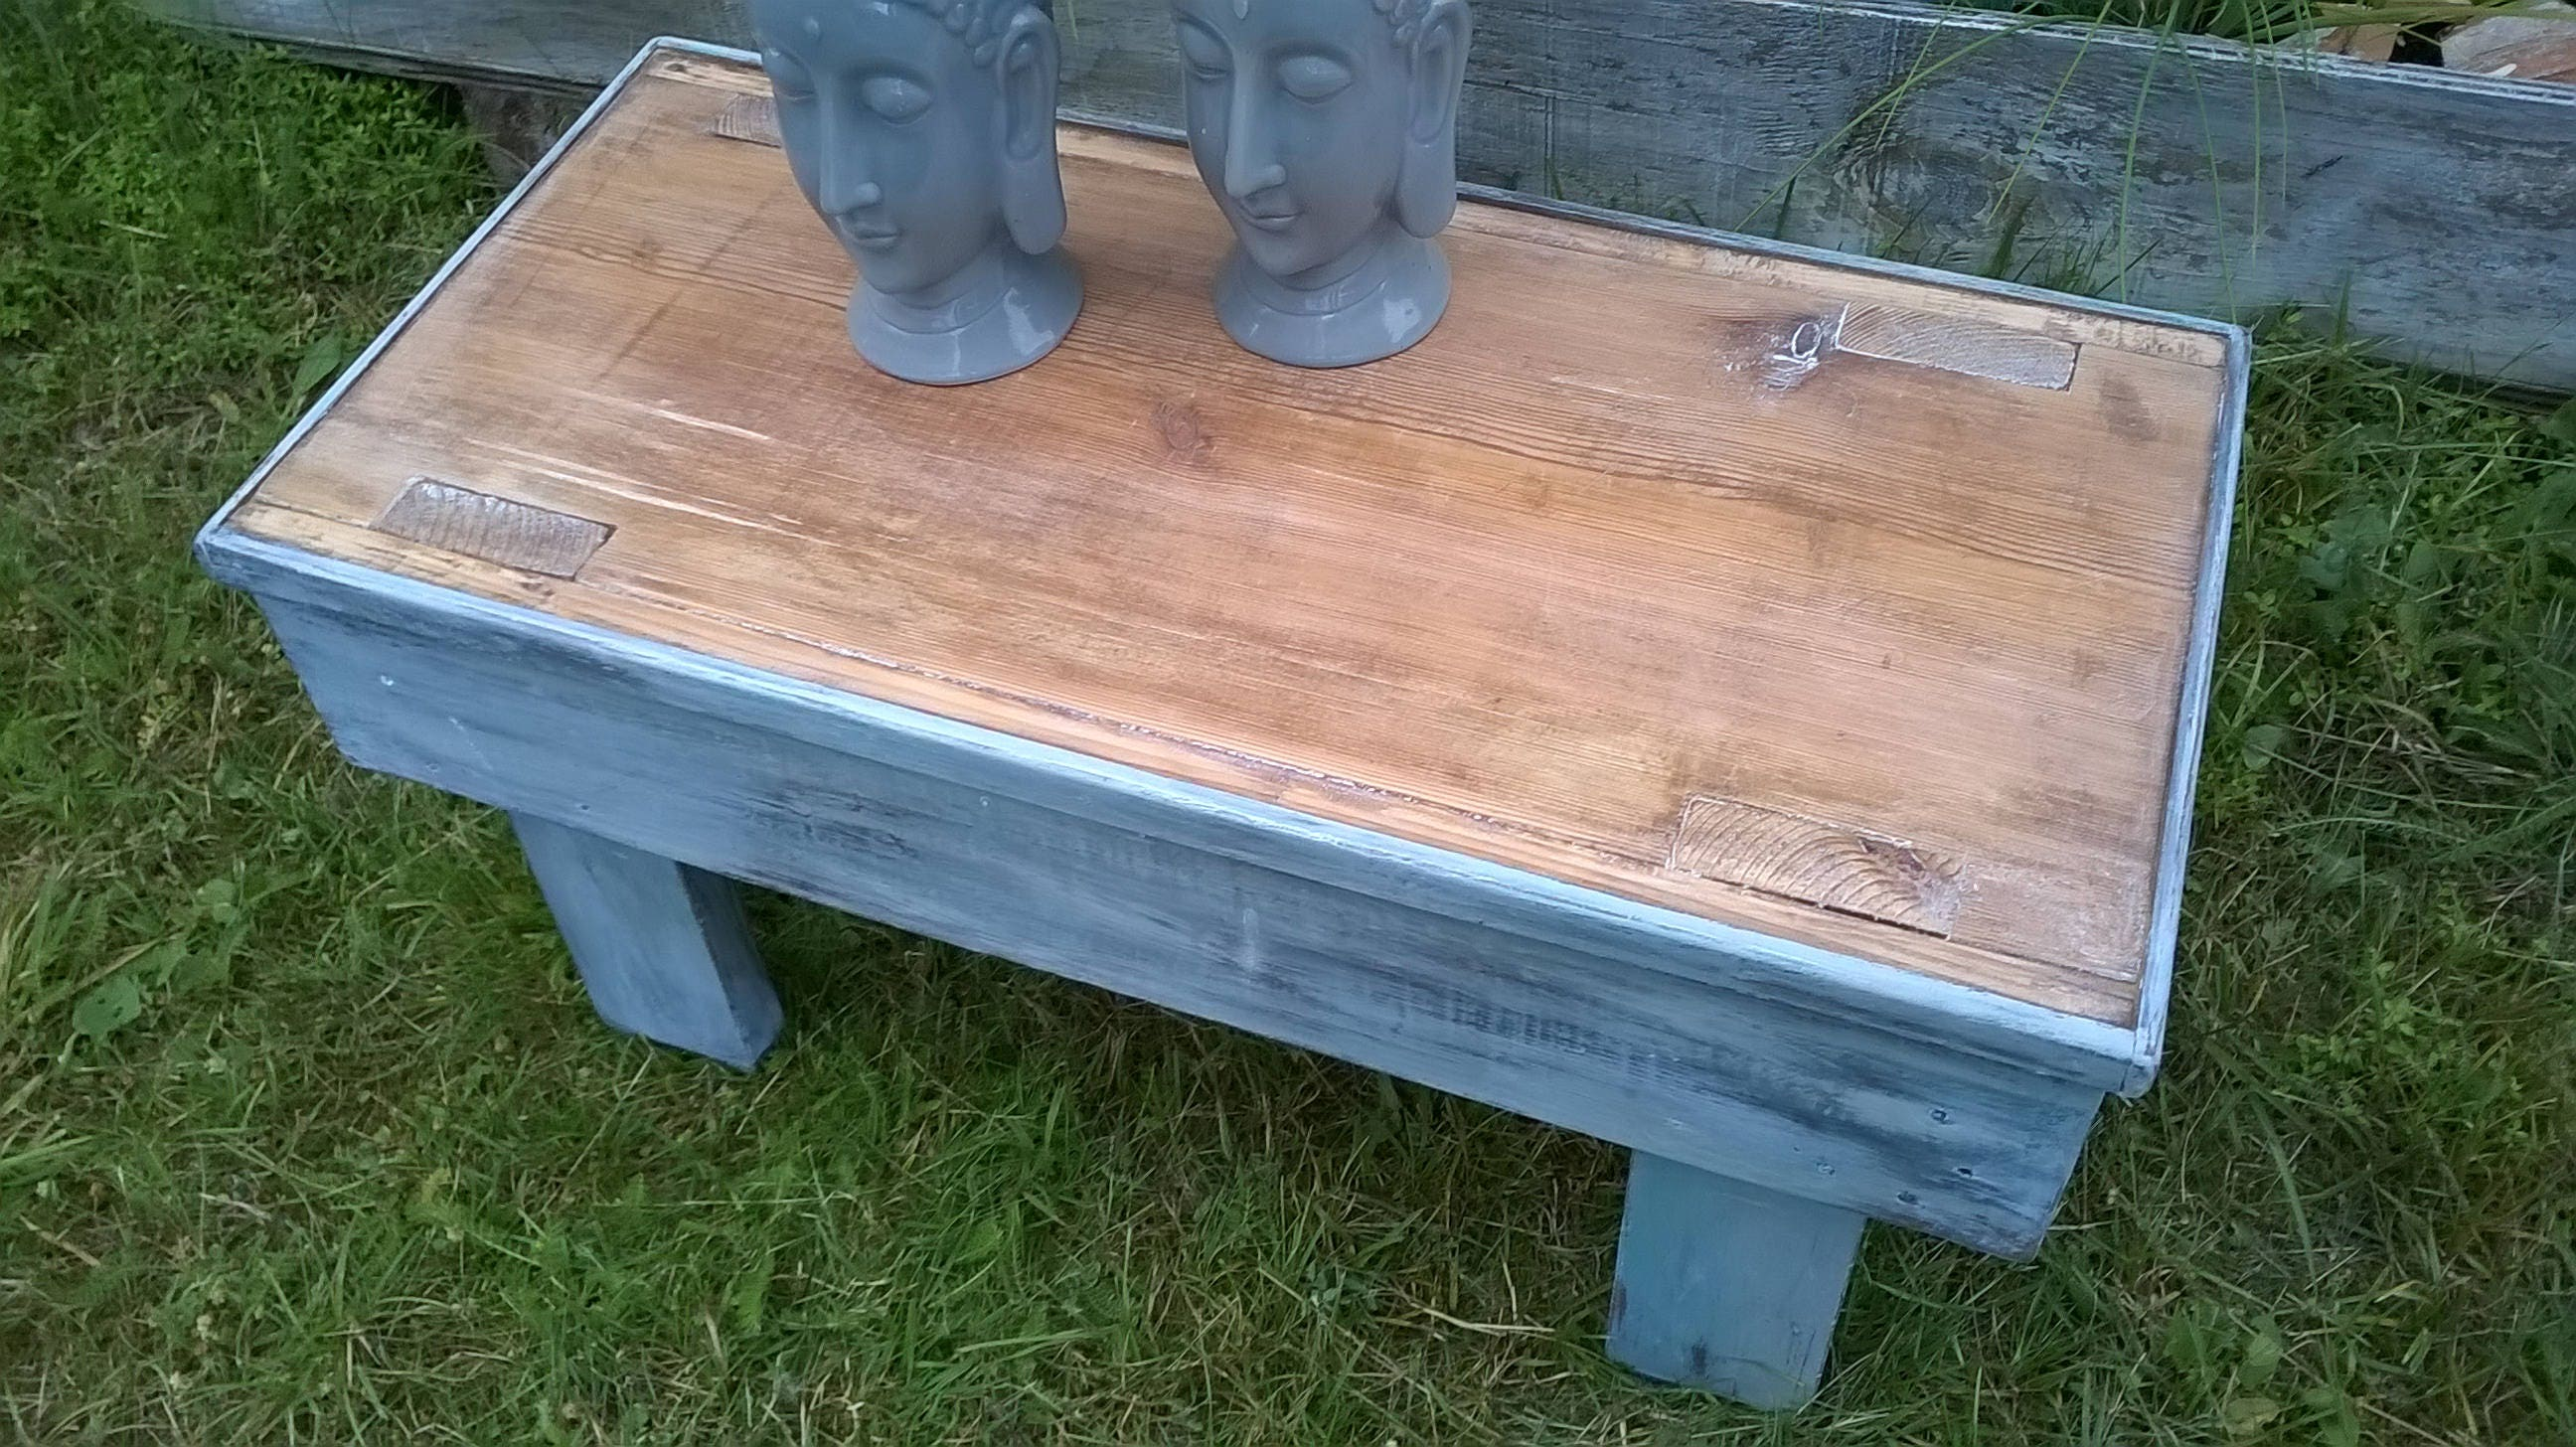 Shabby chic footstool stool side table used look-Shanty